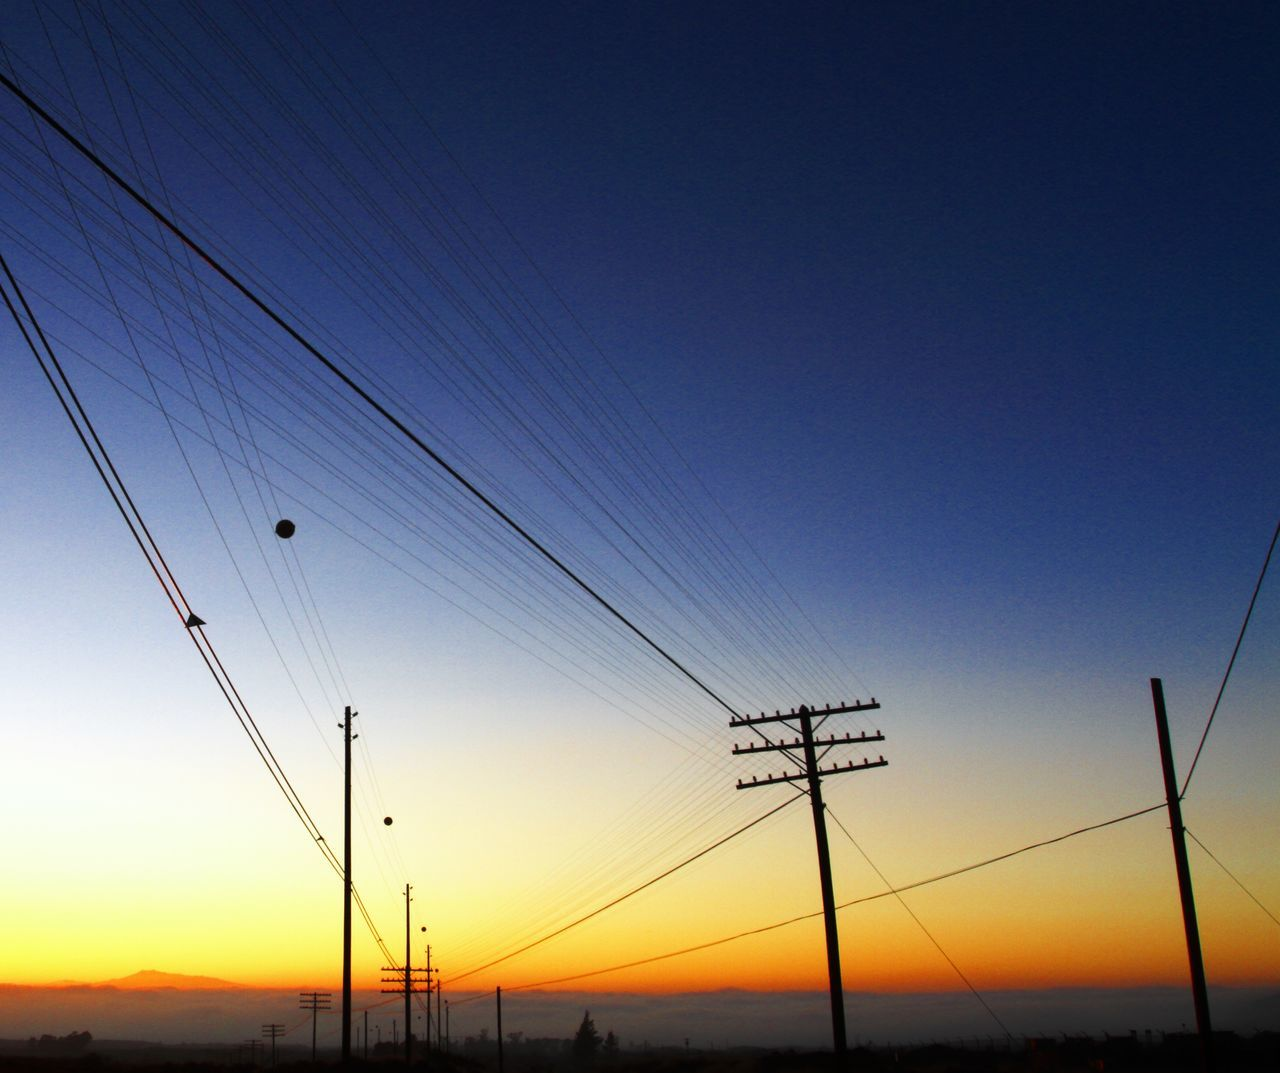 Low Angle View Of Silhouette Electricity Pylons Against Blue Sky During Sunset